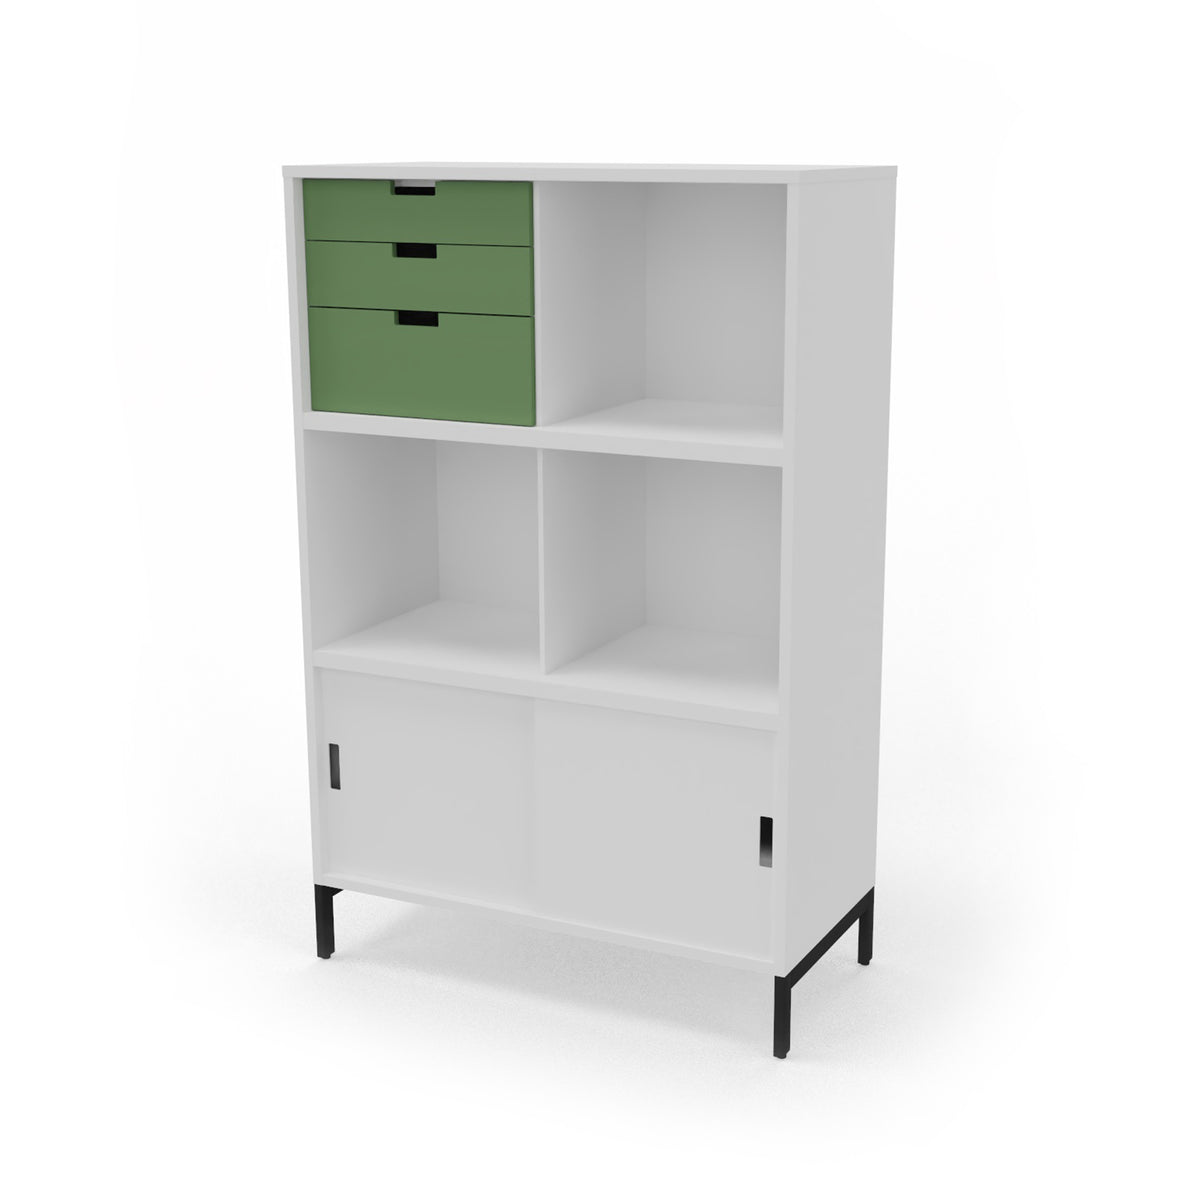 Edsbyn Neat Office Storage 800mm White with Bay Leaf Green